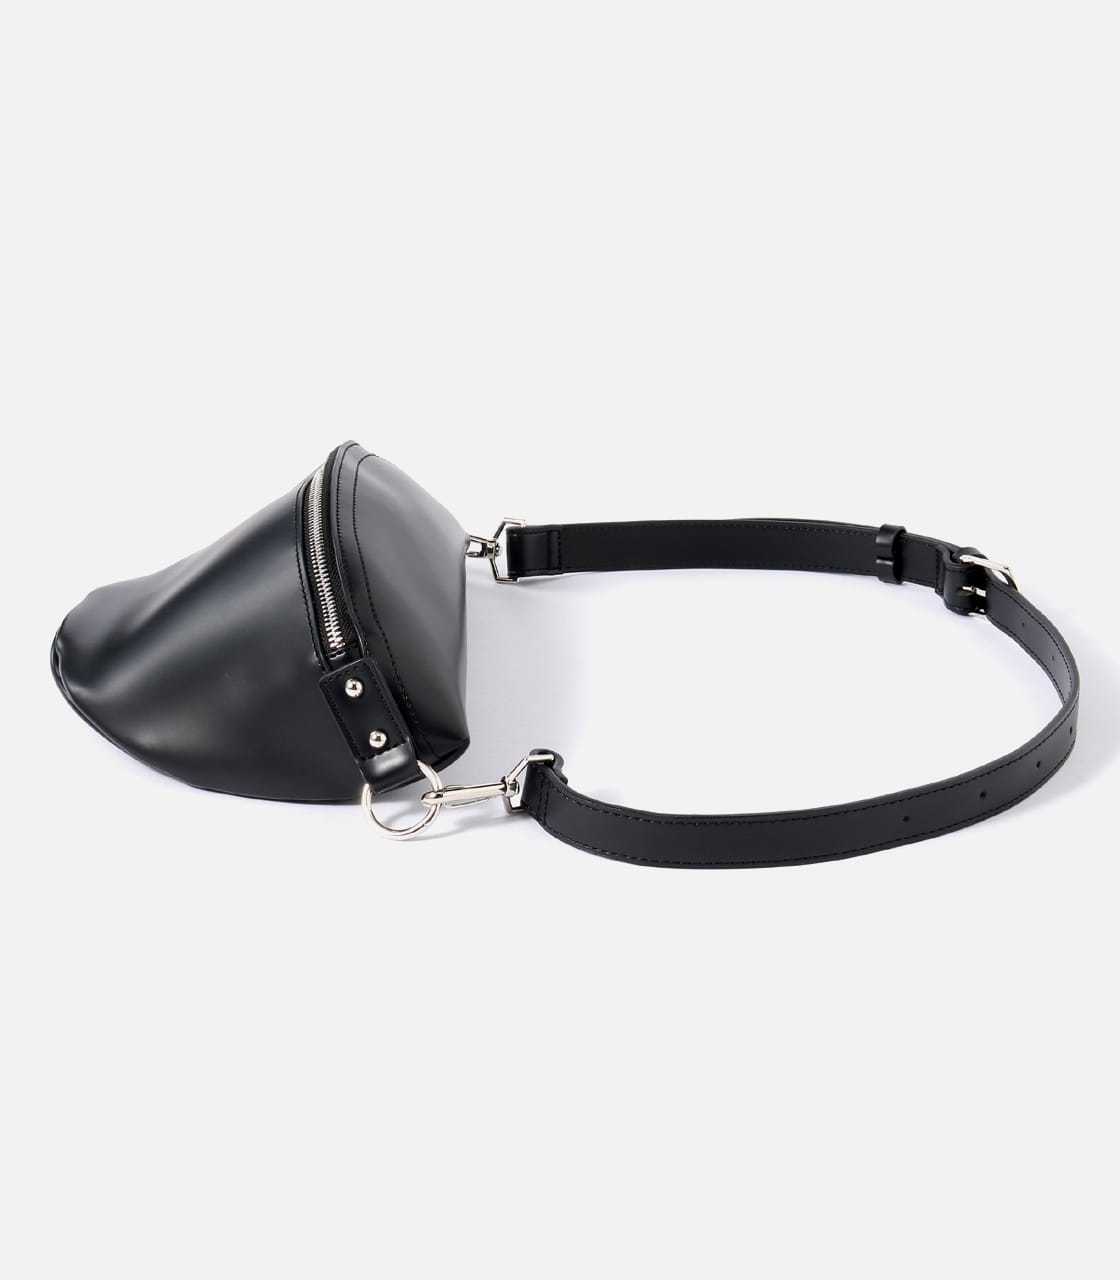 【AZUL BY MOUSSY】FAKE LEATHER WAISTBAG 詳細画像 BLK 3